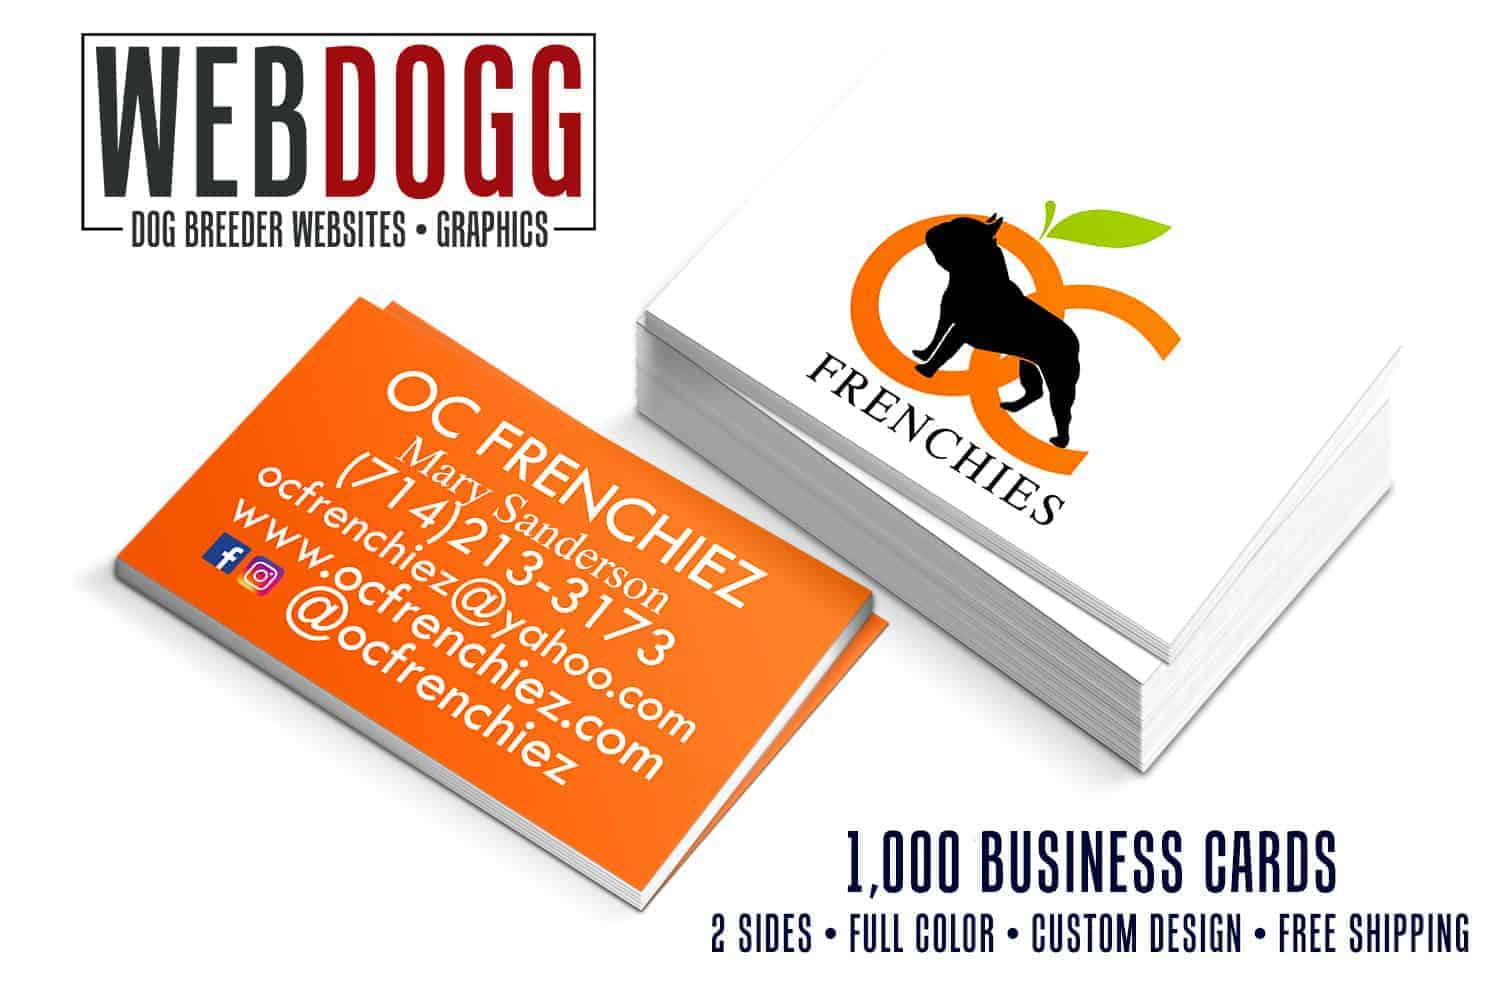 Dog business cards kennel business cards printing 99 business cards colourmoves